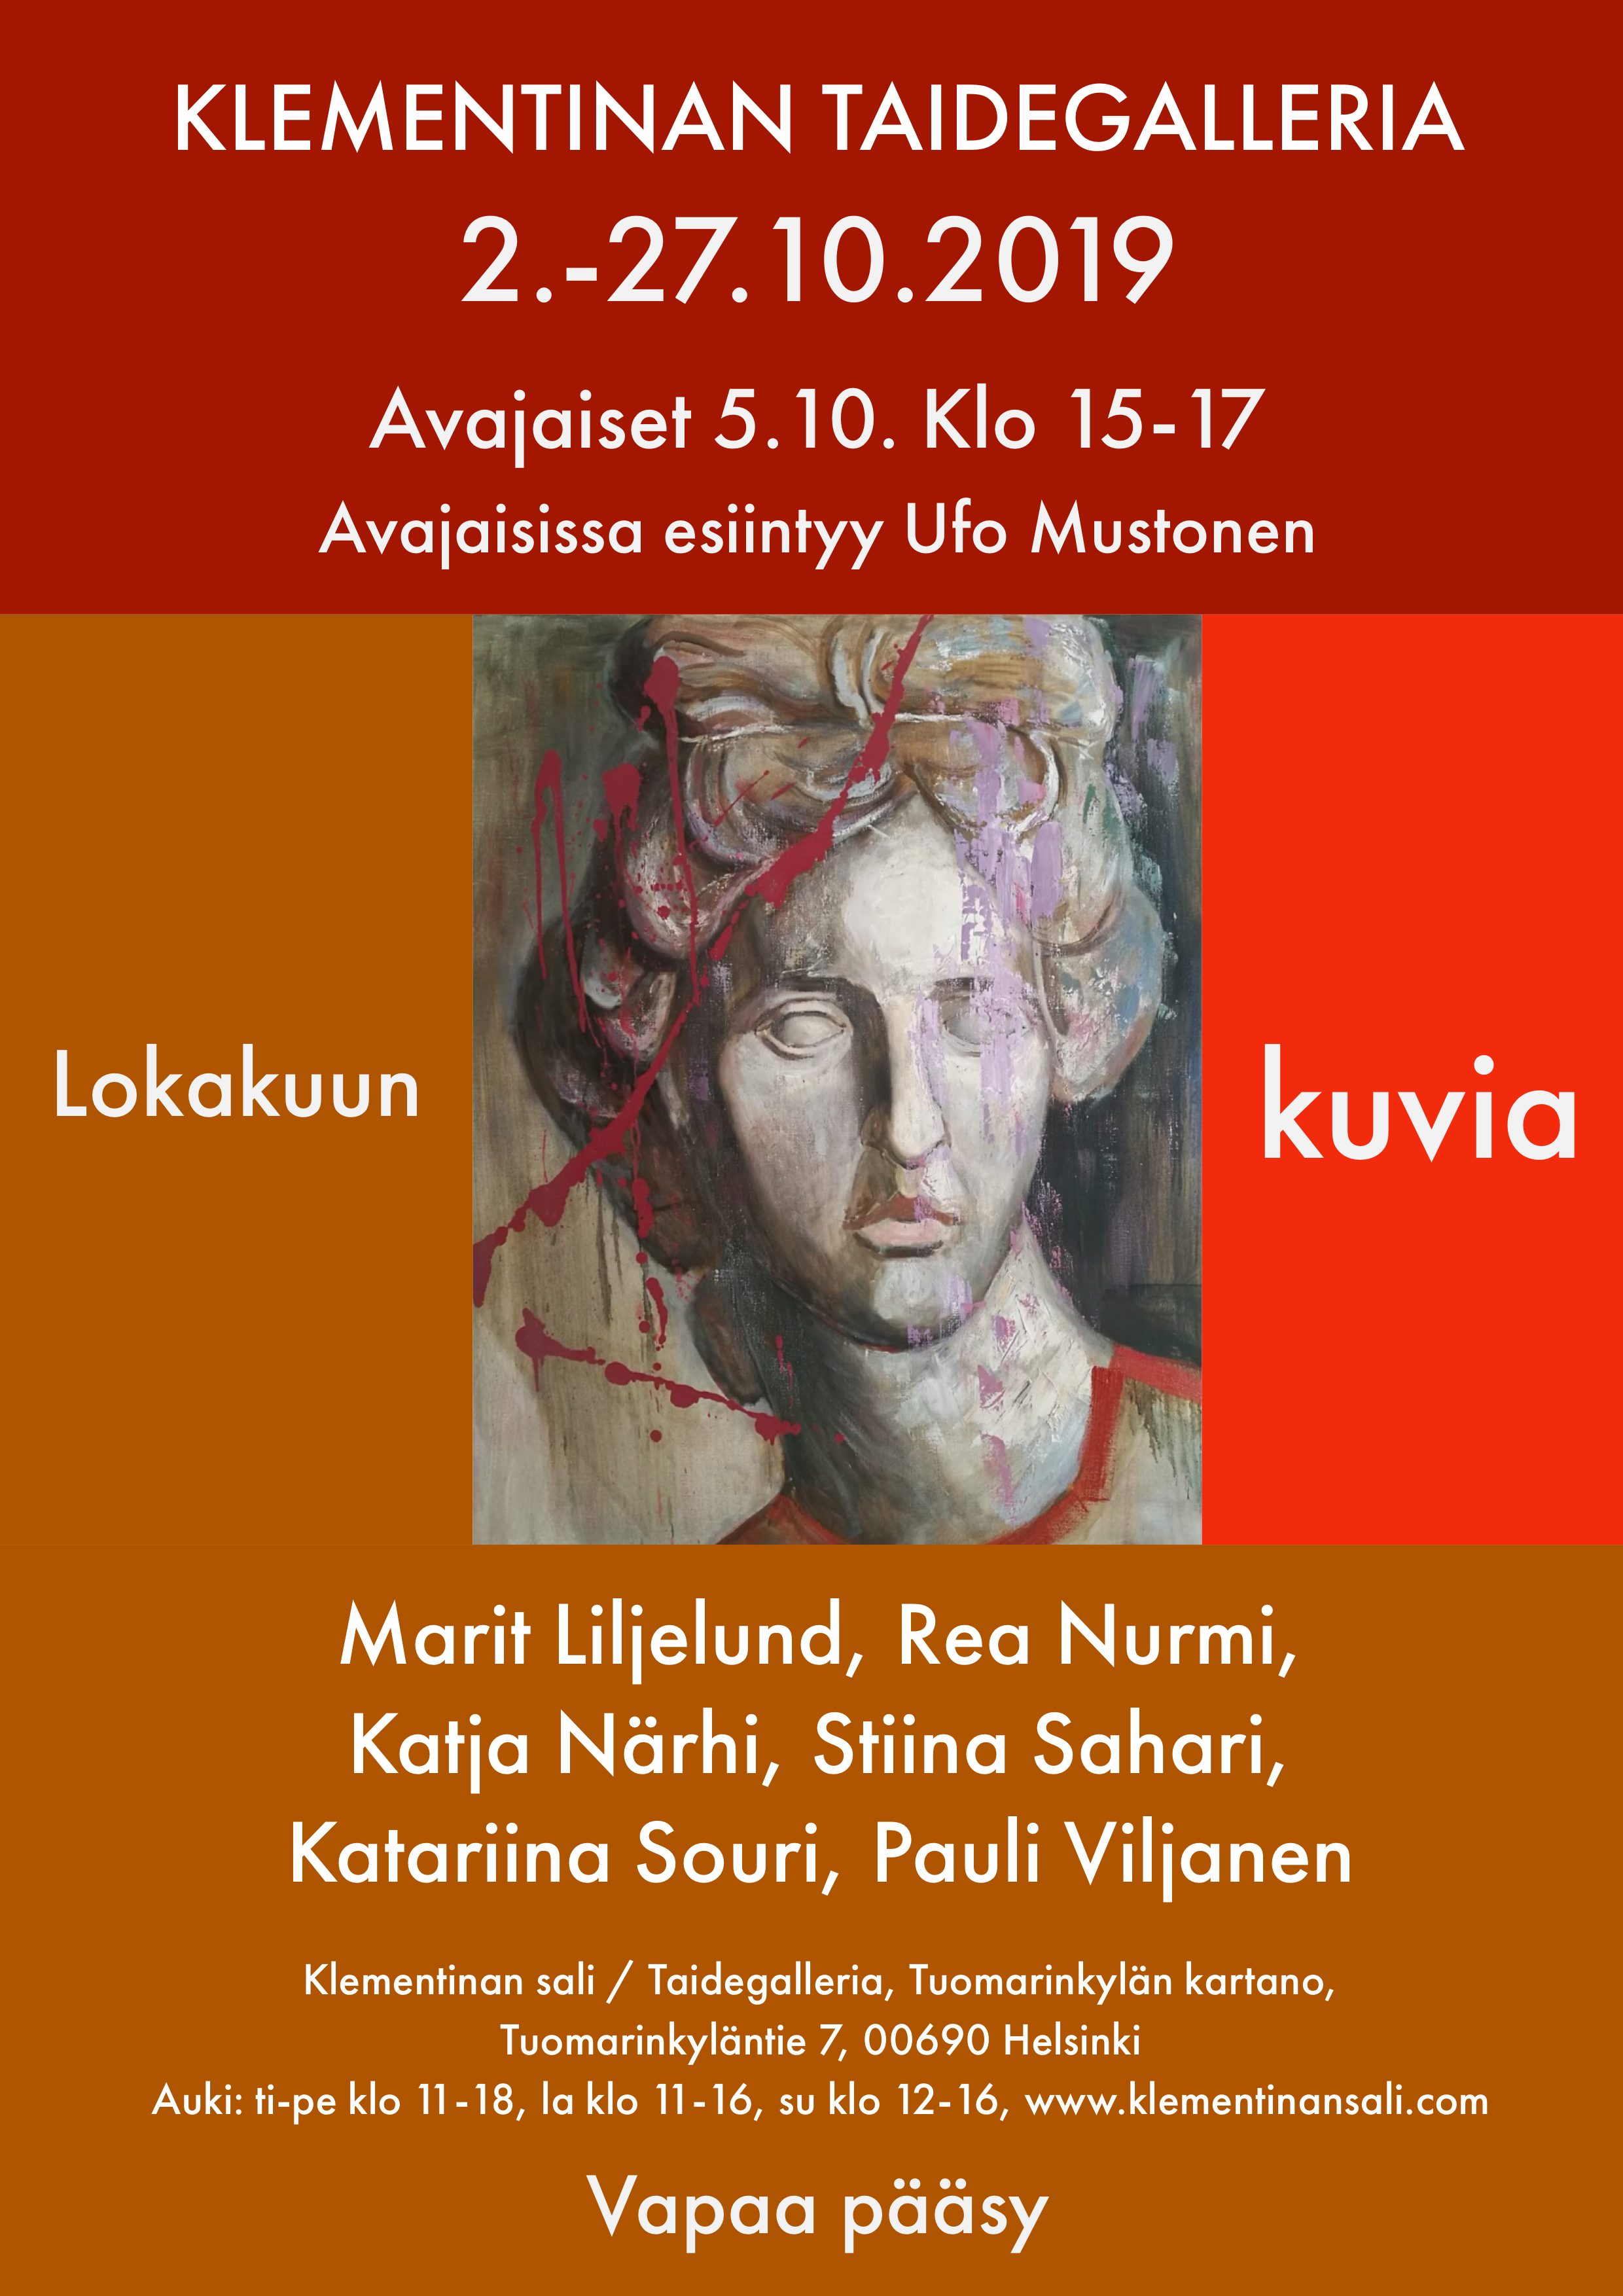 Pauli Viljanen exhibition